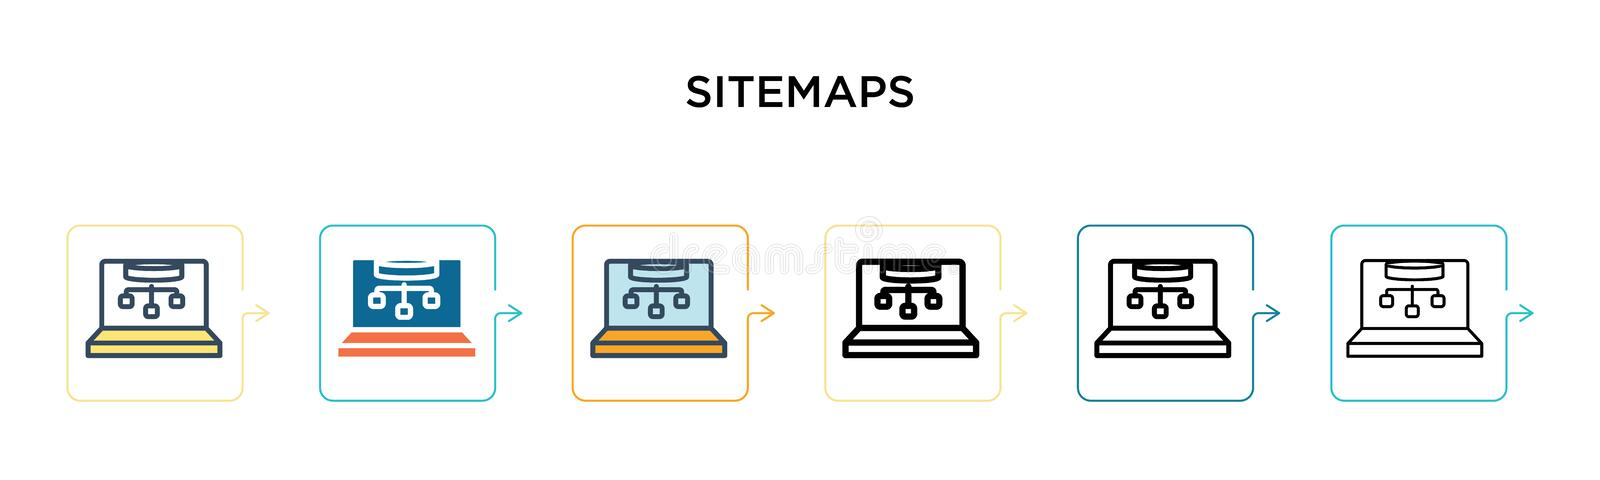 Sitemaps vector icon in 6 different modern styles. Black, two colored sitemaps icons designed in filled, outline, line and stroke. Style. Vector illustration royalty free illustration